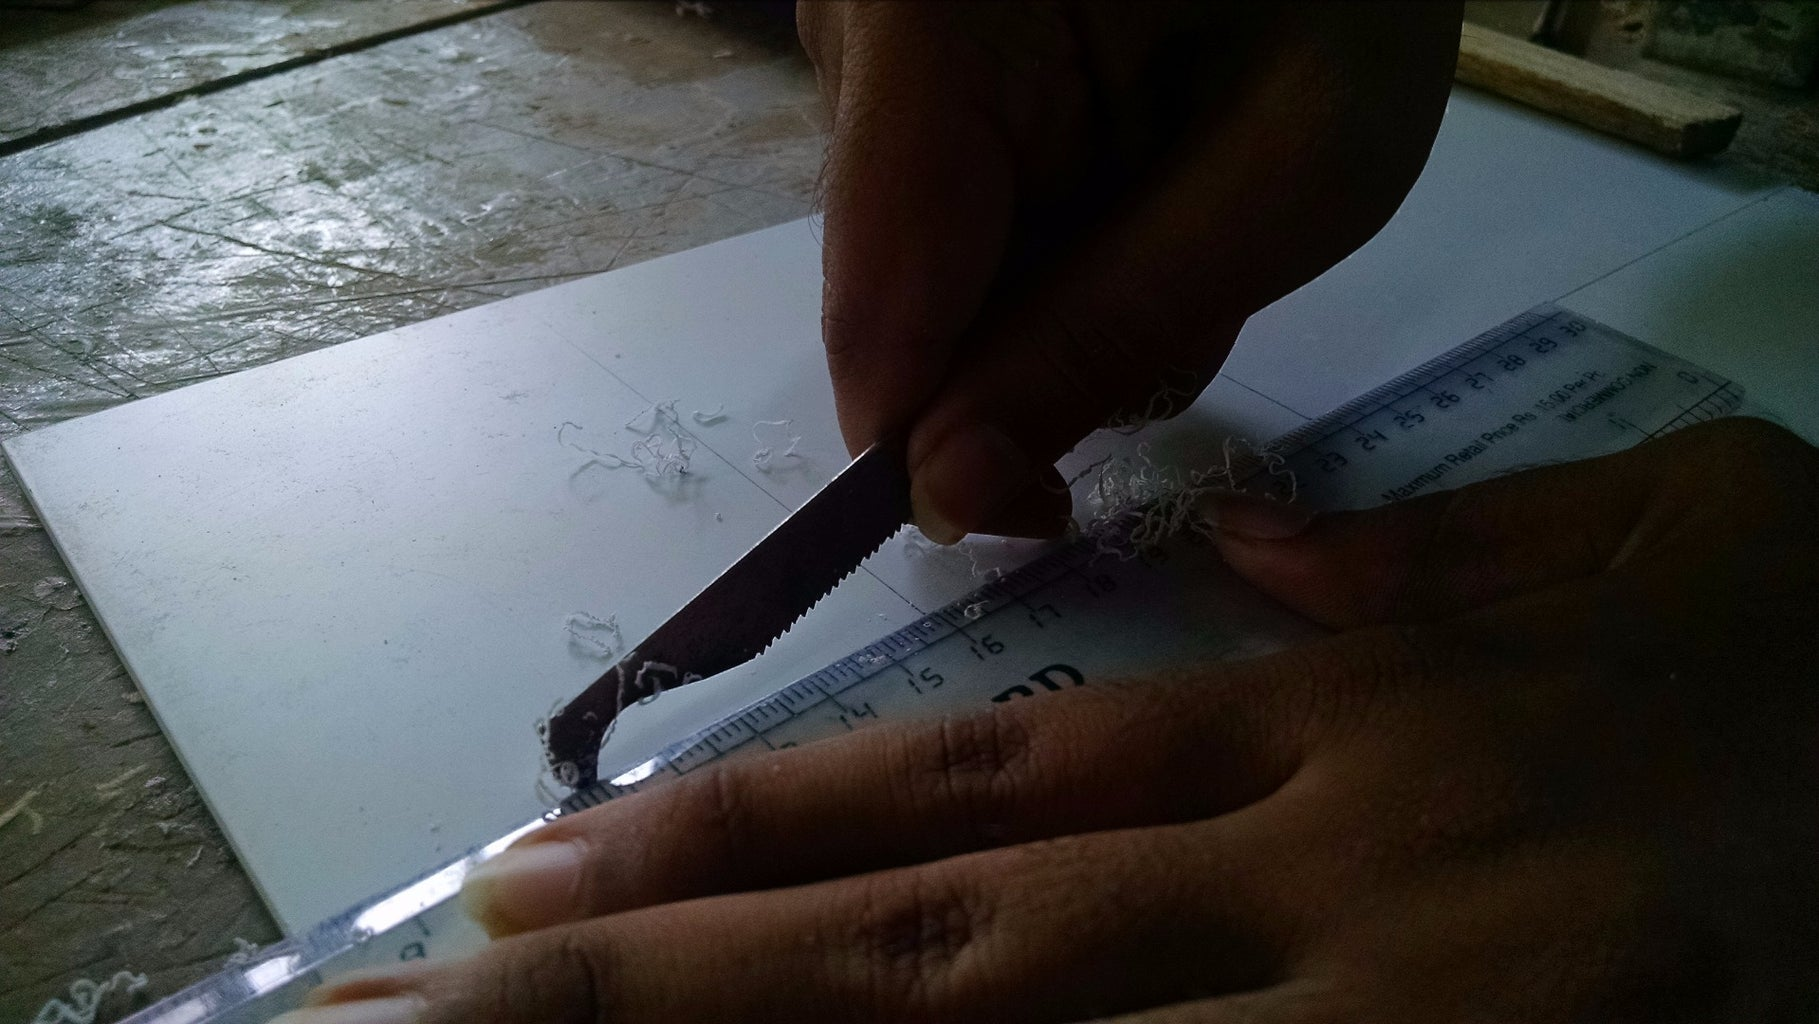 Laying Your Imagination on Paper!